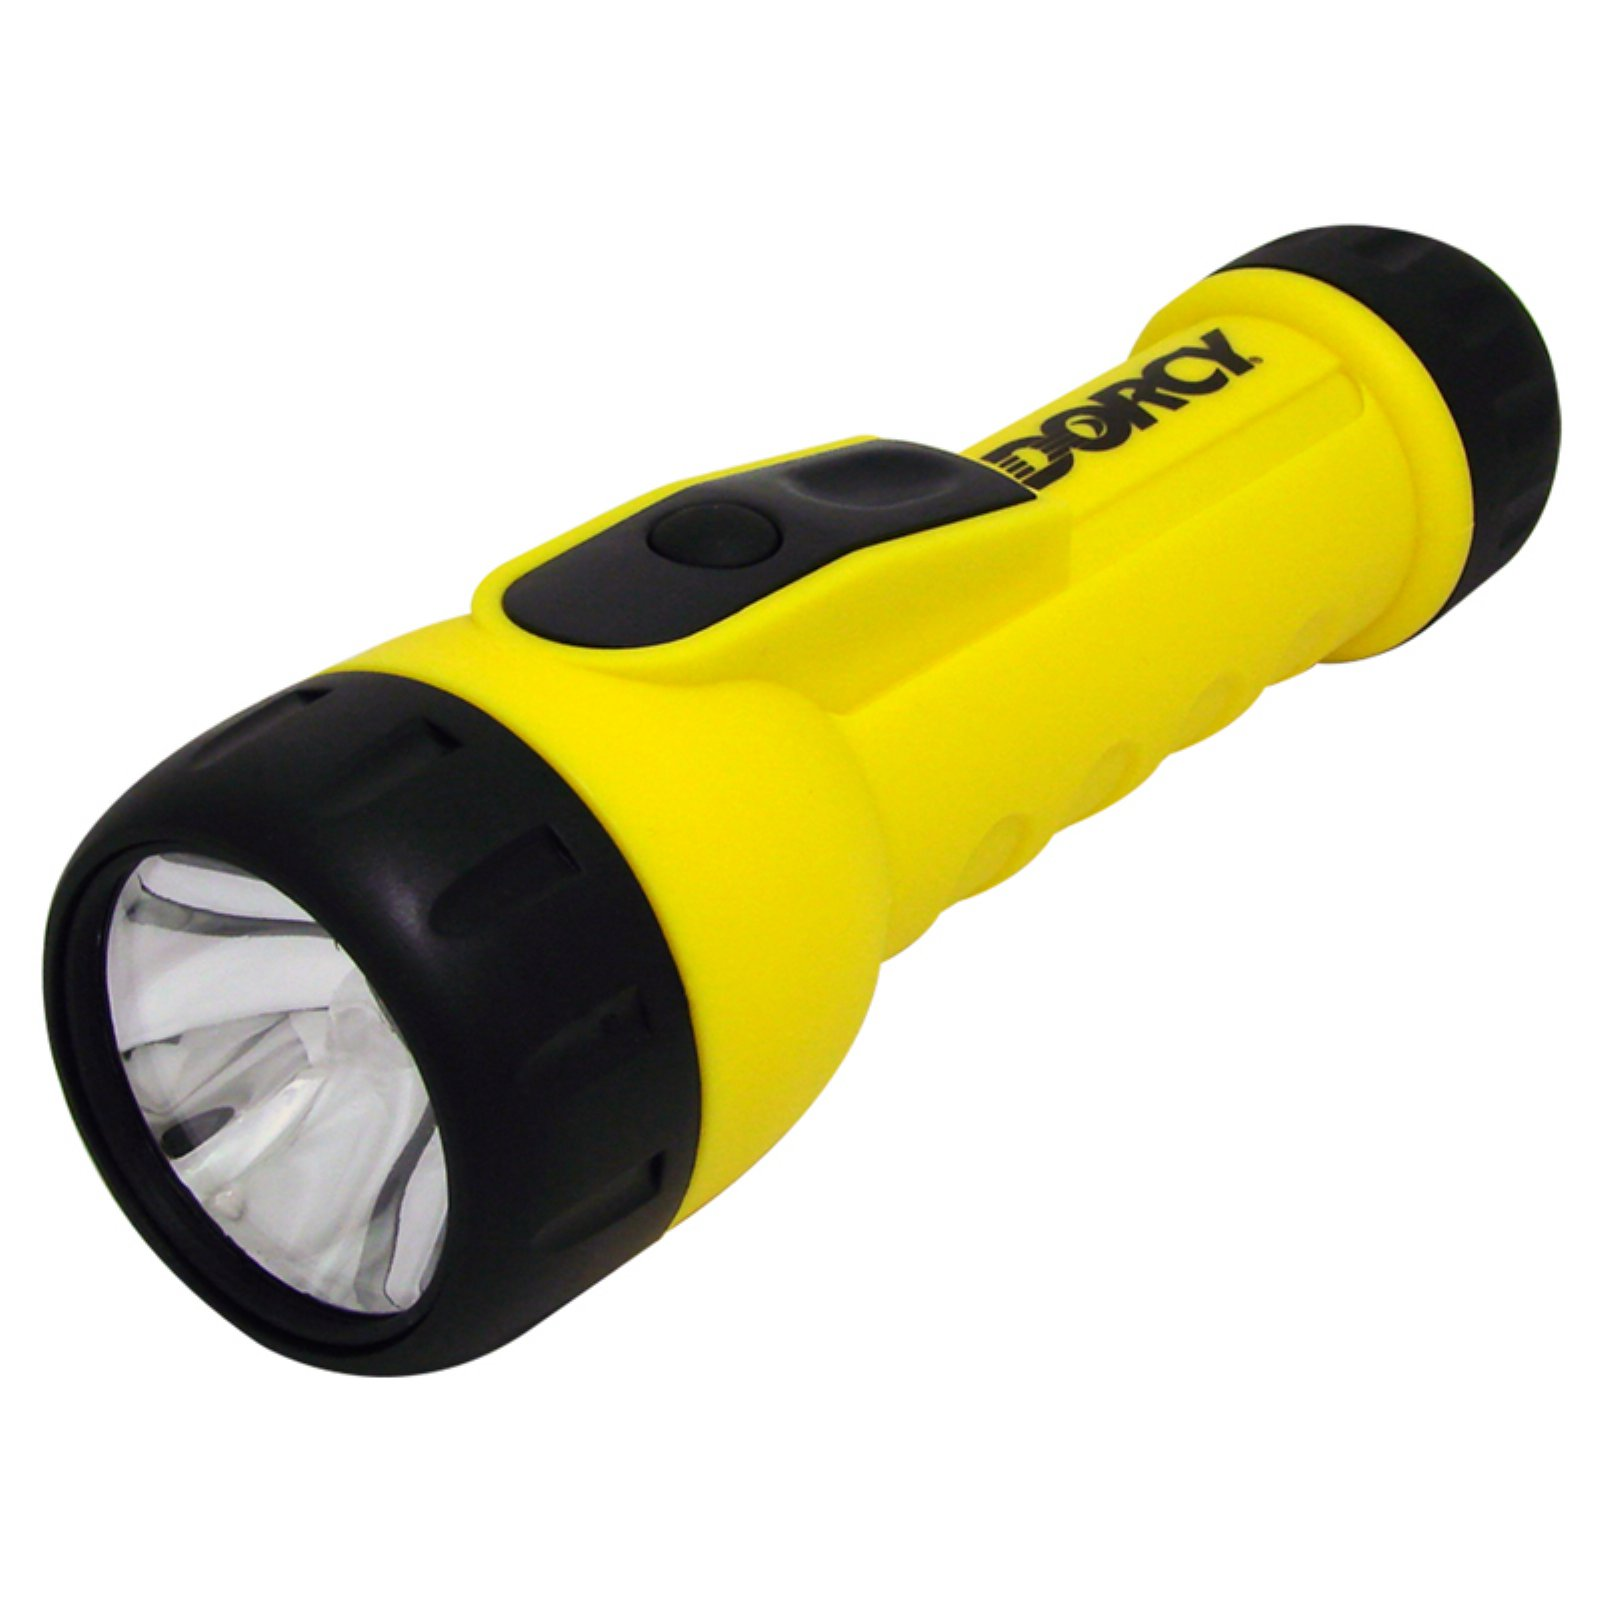 Dorcy 41-2350 Weather Resistant LED Worklight Flashlight with Batteries, 20 lumens by Dorcy International